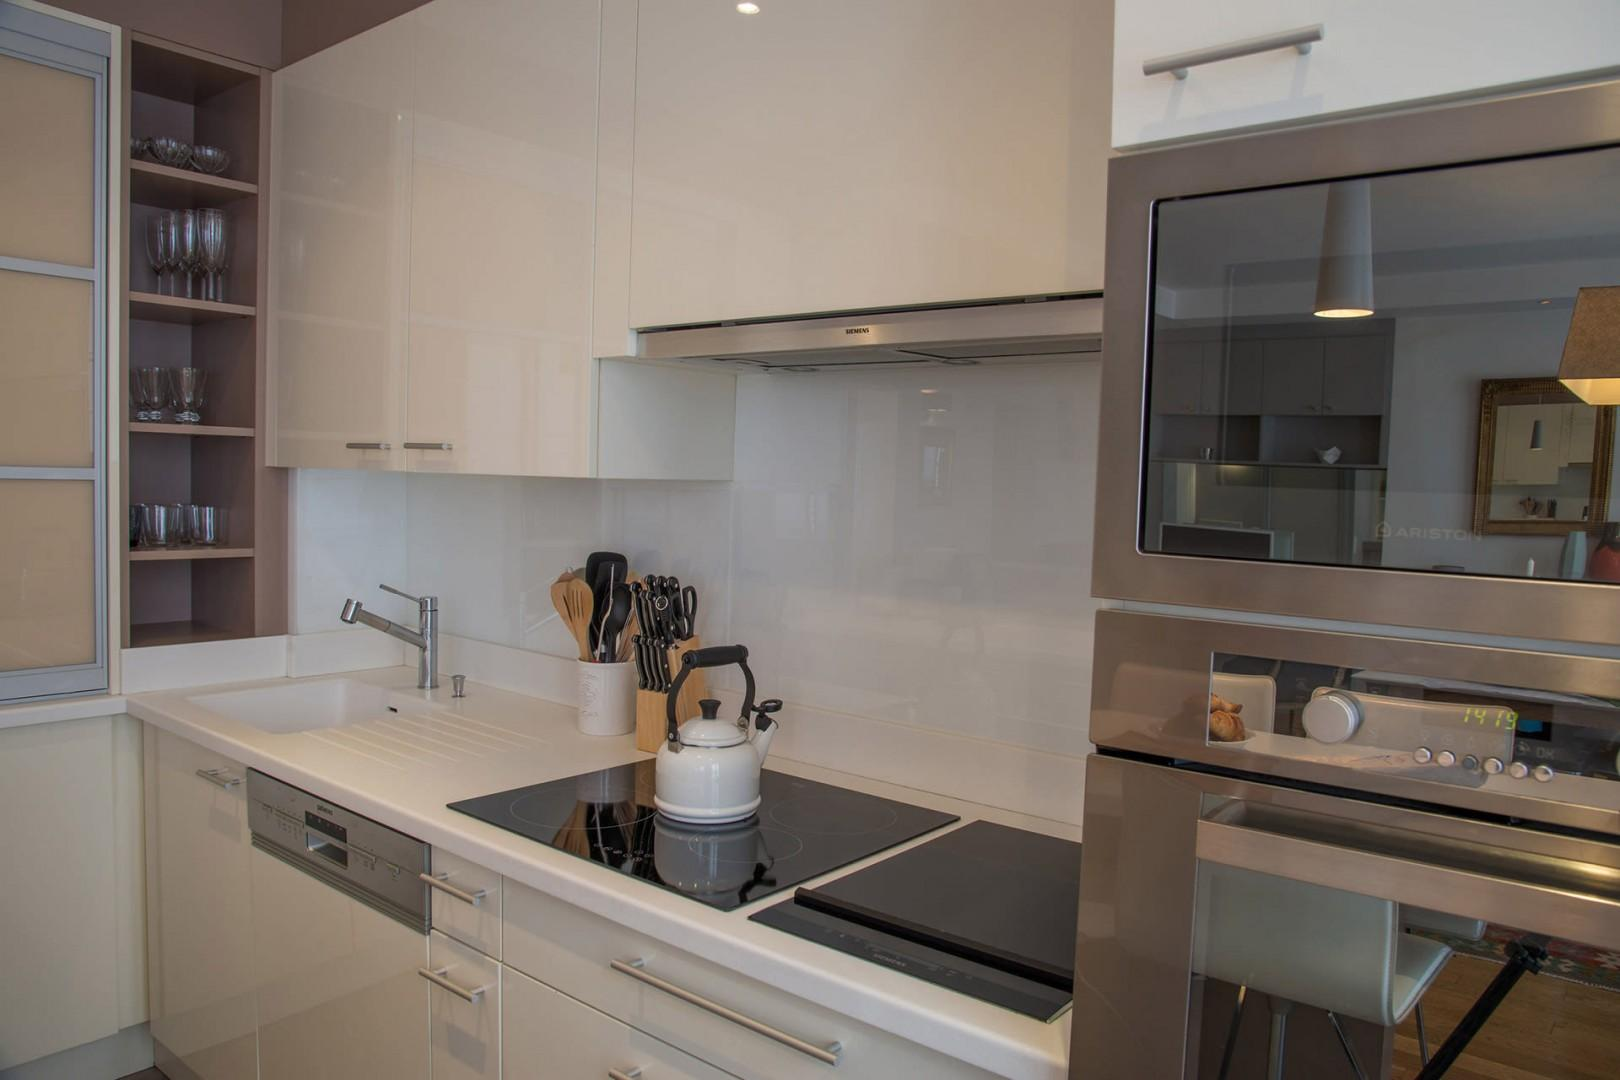 The kitchen features an induction cooktop stove and modern appliances.